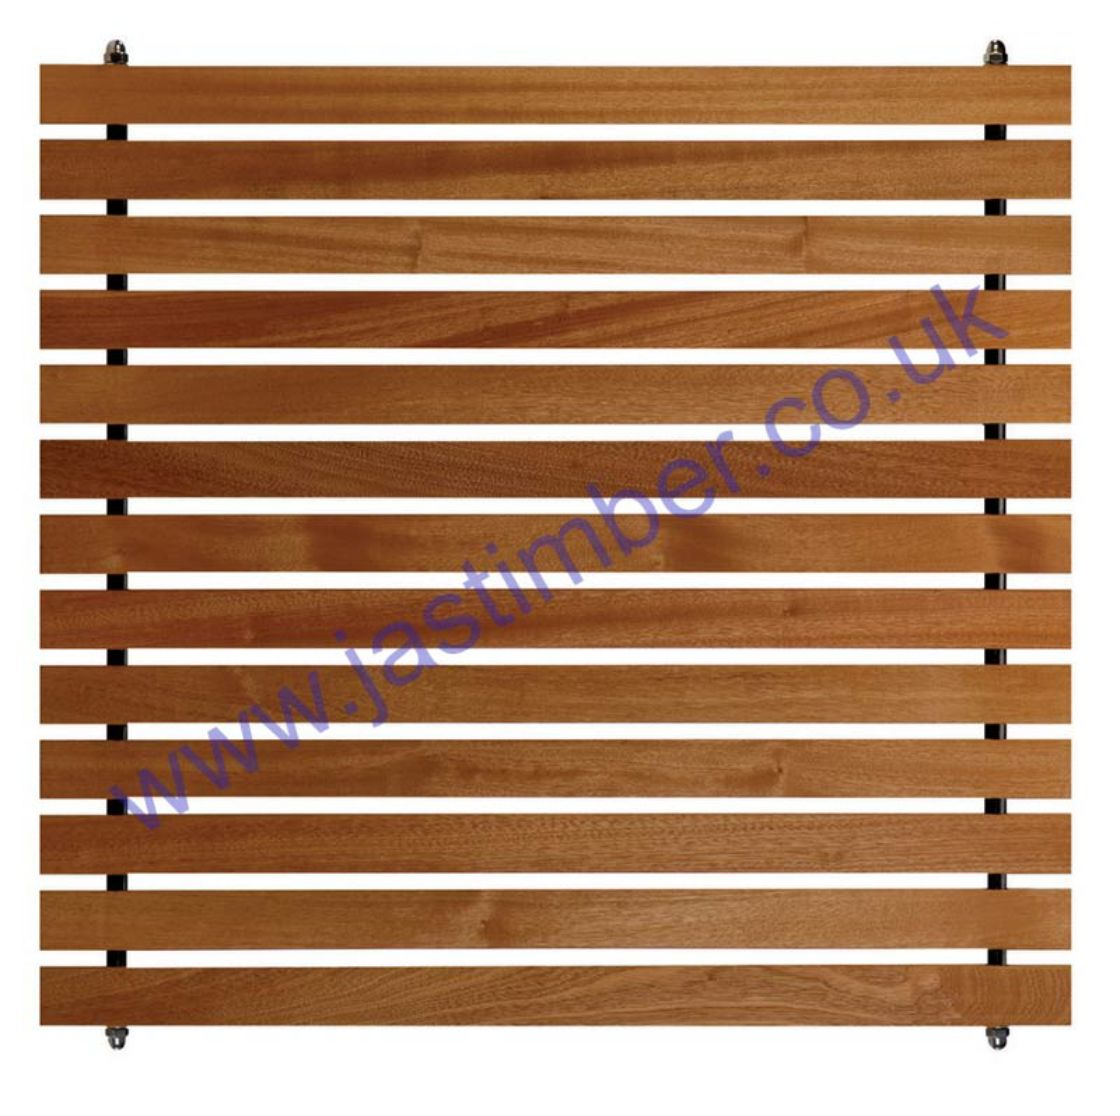 LD505 FUSION HARDWOOD SLATTED INFILL PANEL - 750x800x21mm